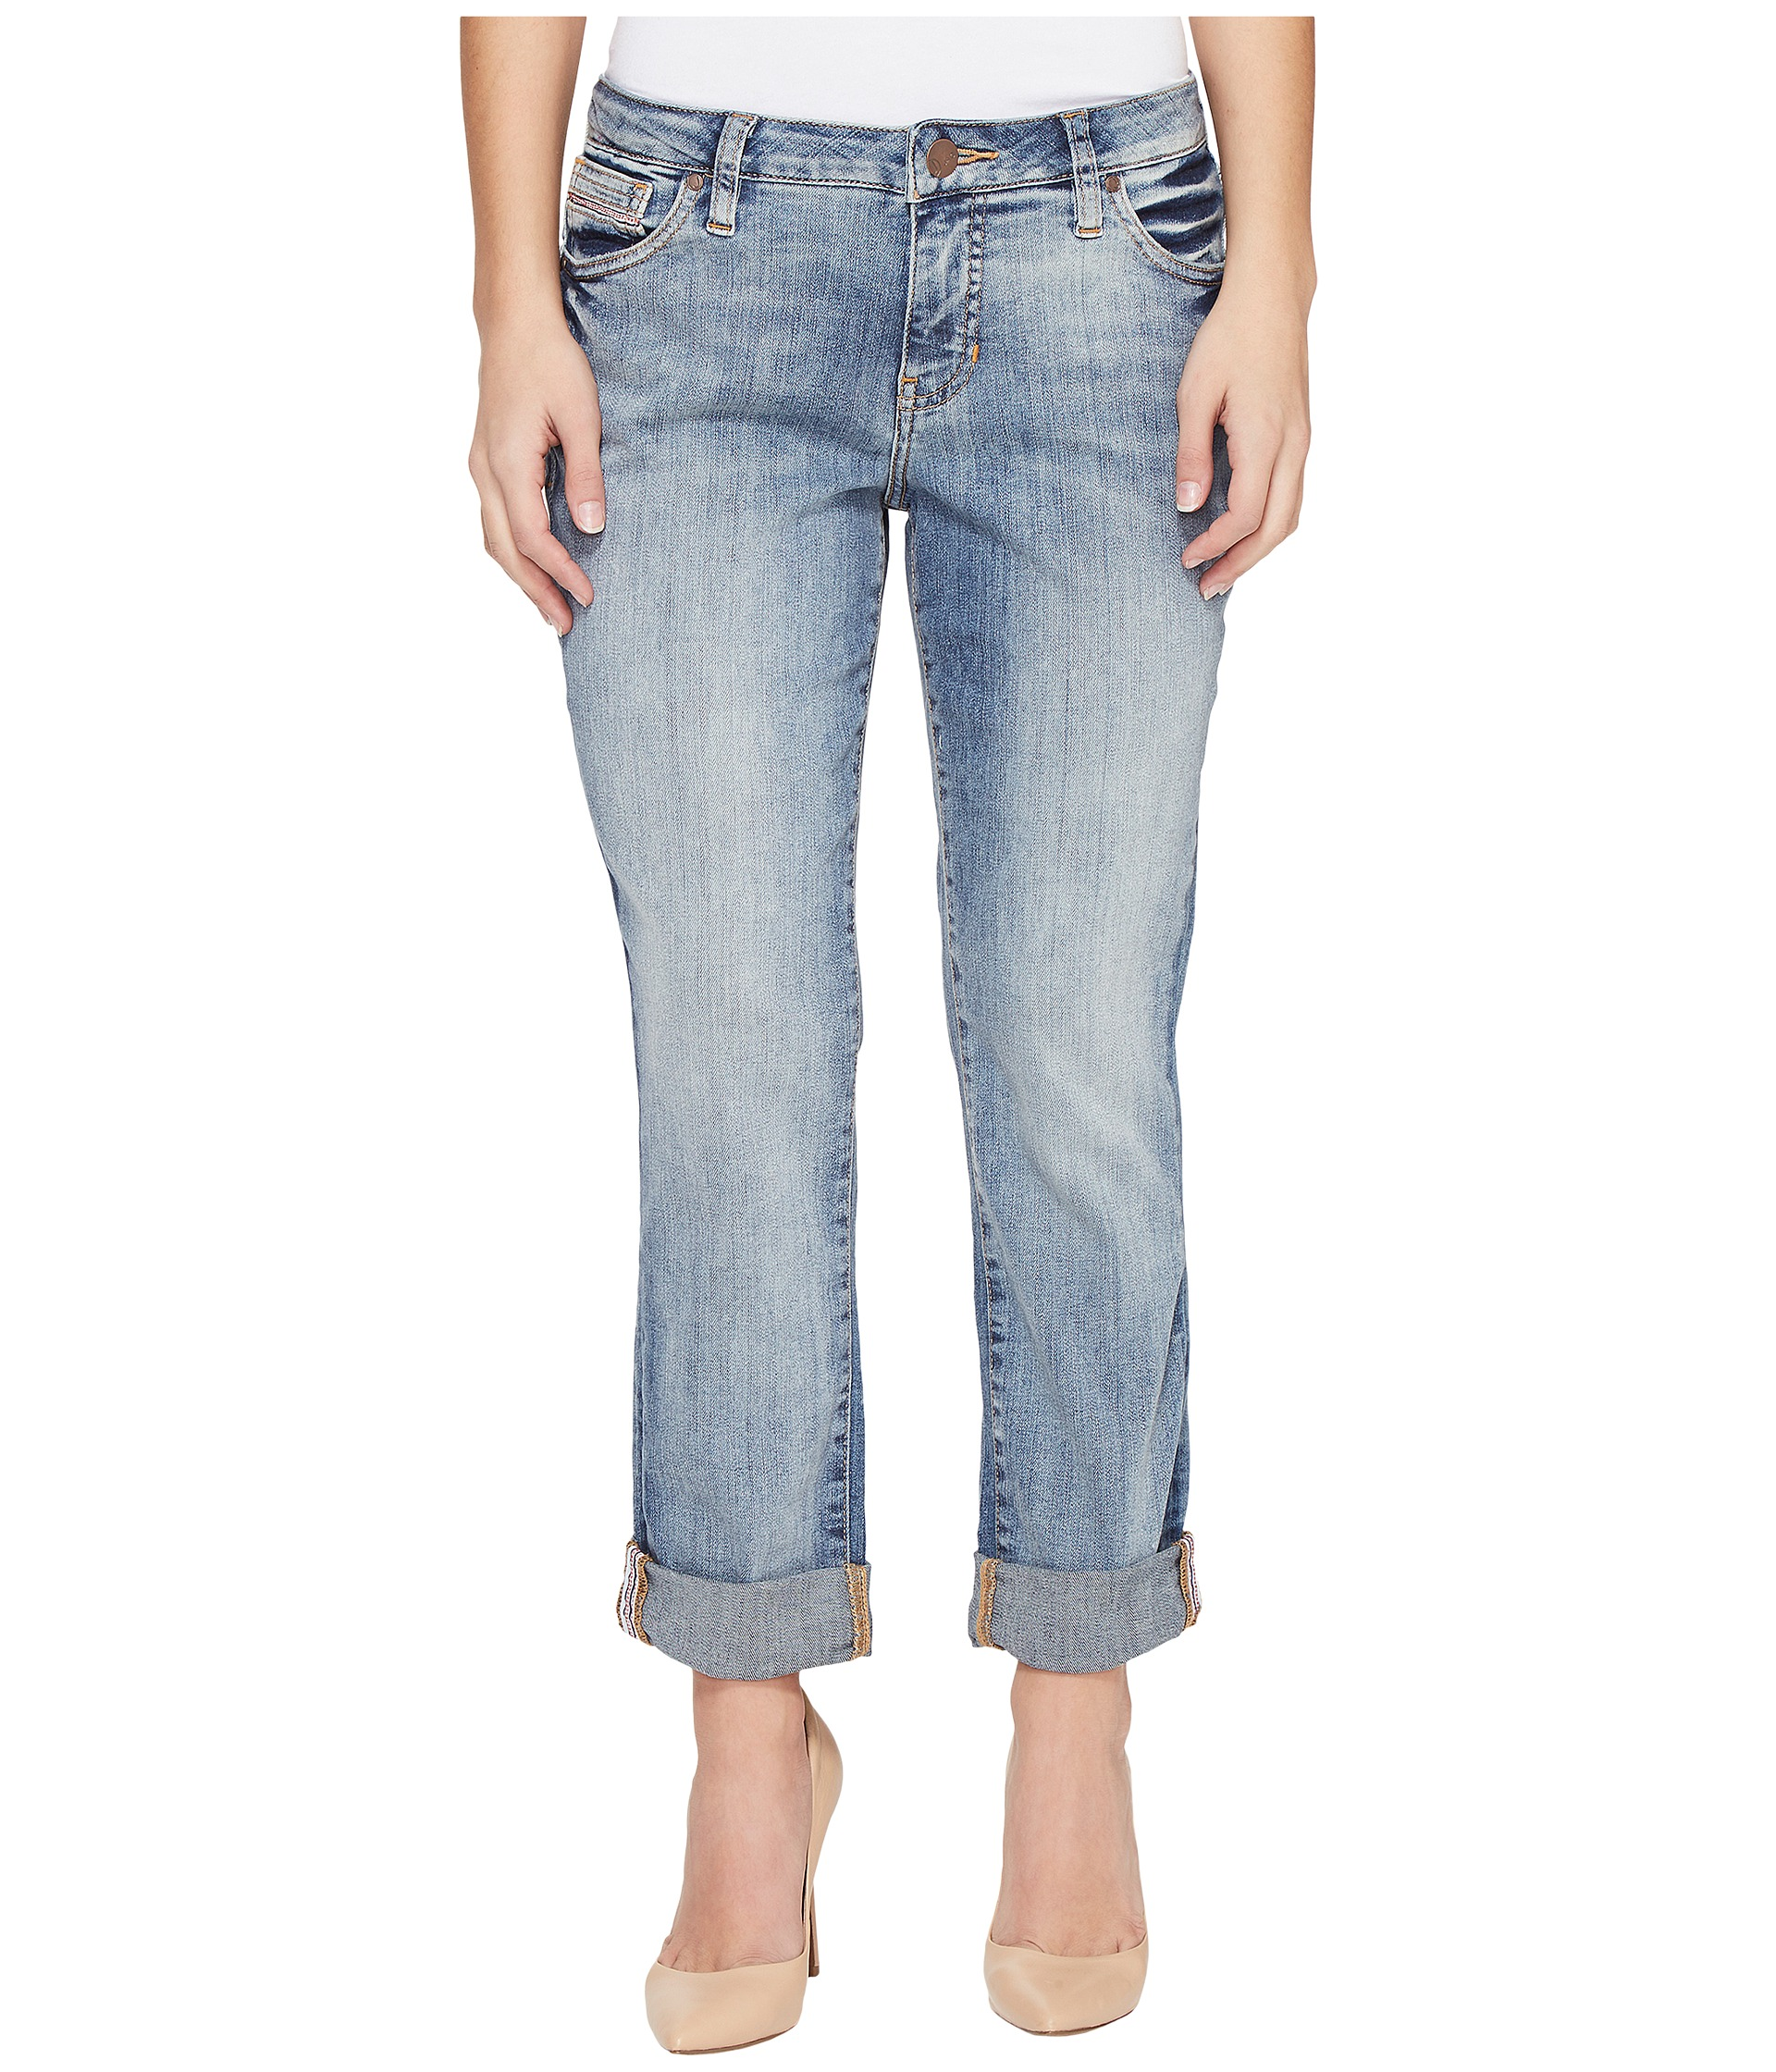 Jag Jeans Petite Petite Alex Boyfriend Platinum Denim in Saginaw Blue at Zappos.com